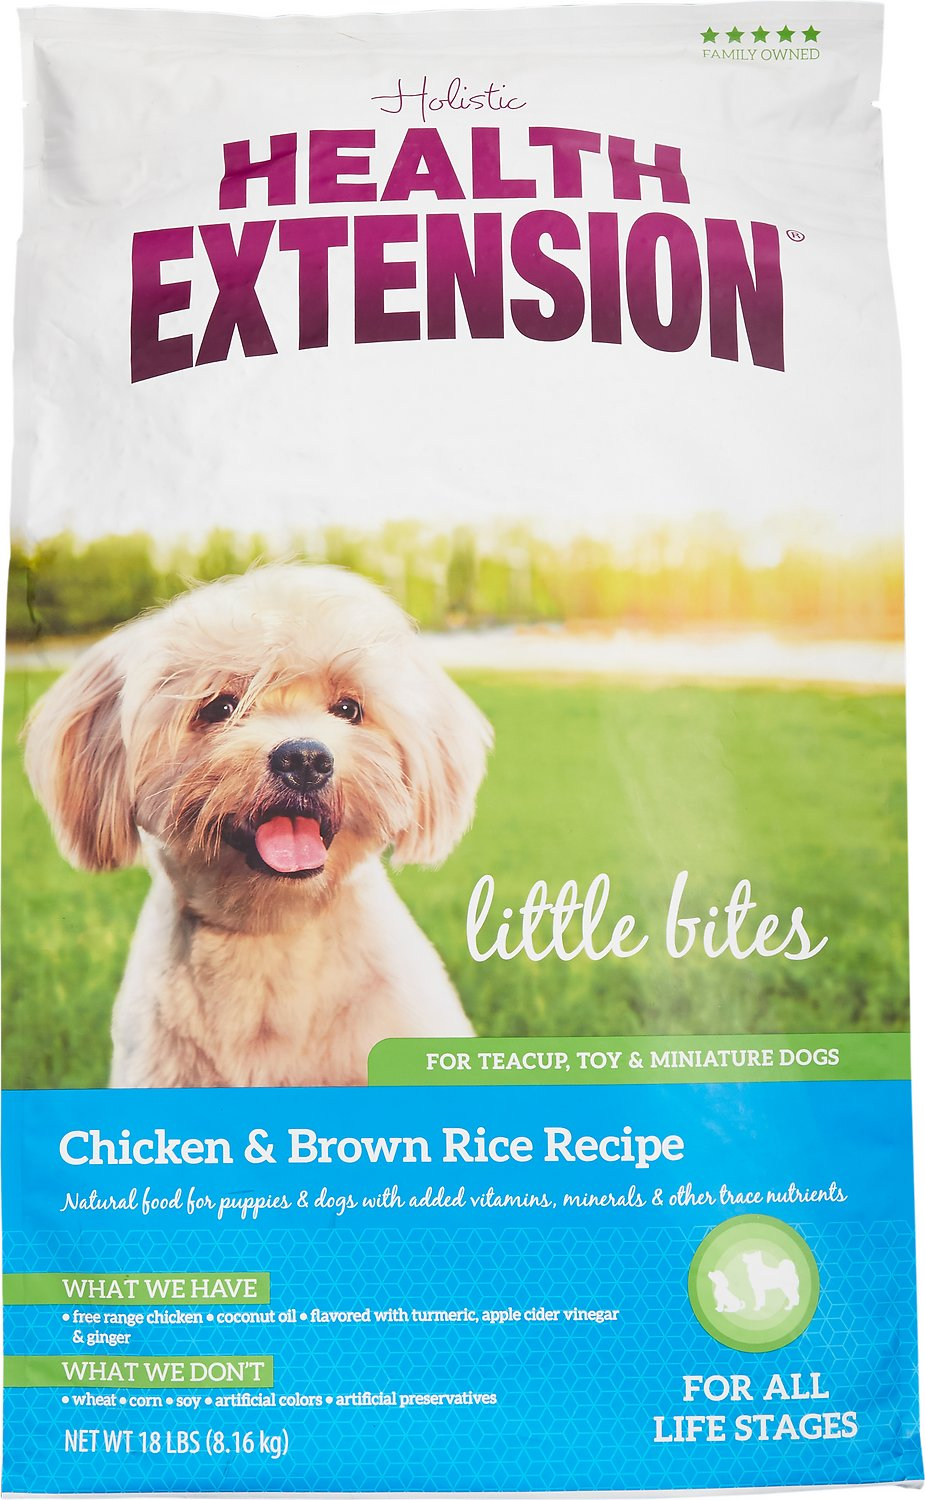 Health Extension Little Bites Chicken & Brown Rice Recipe Dry Dog Food Image